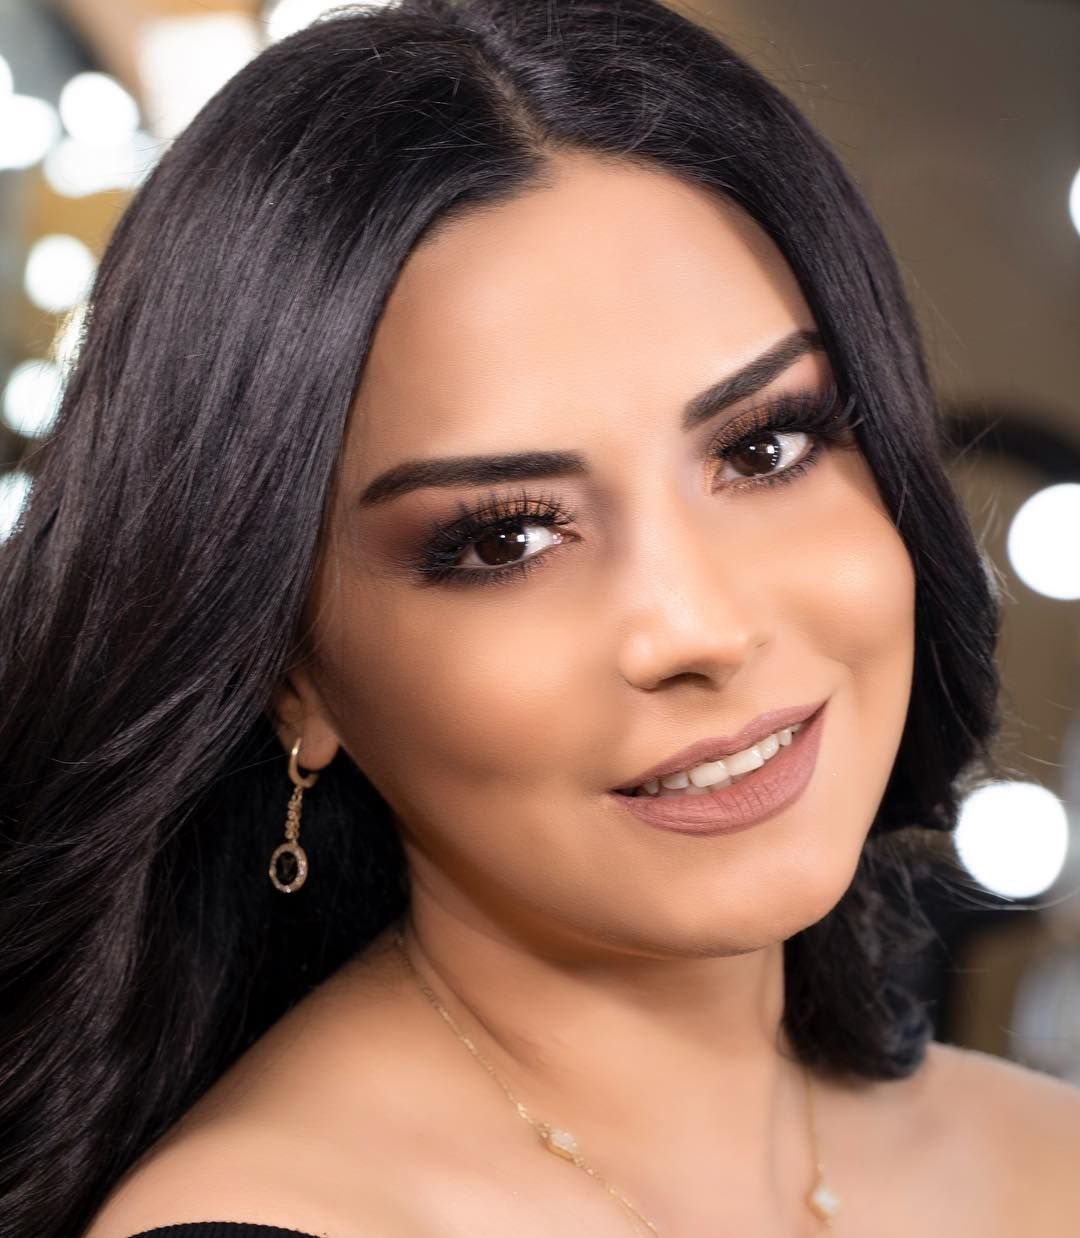 Vusala Alizade TV presenter Azerbaijan